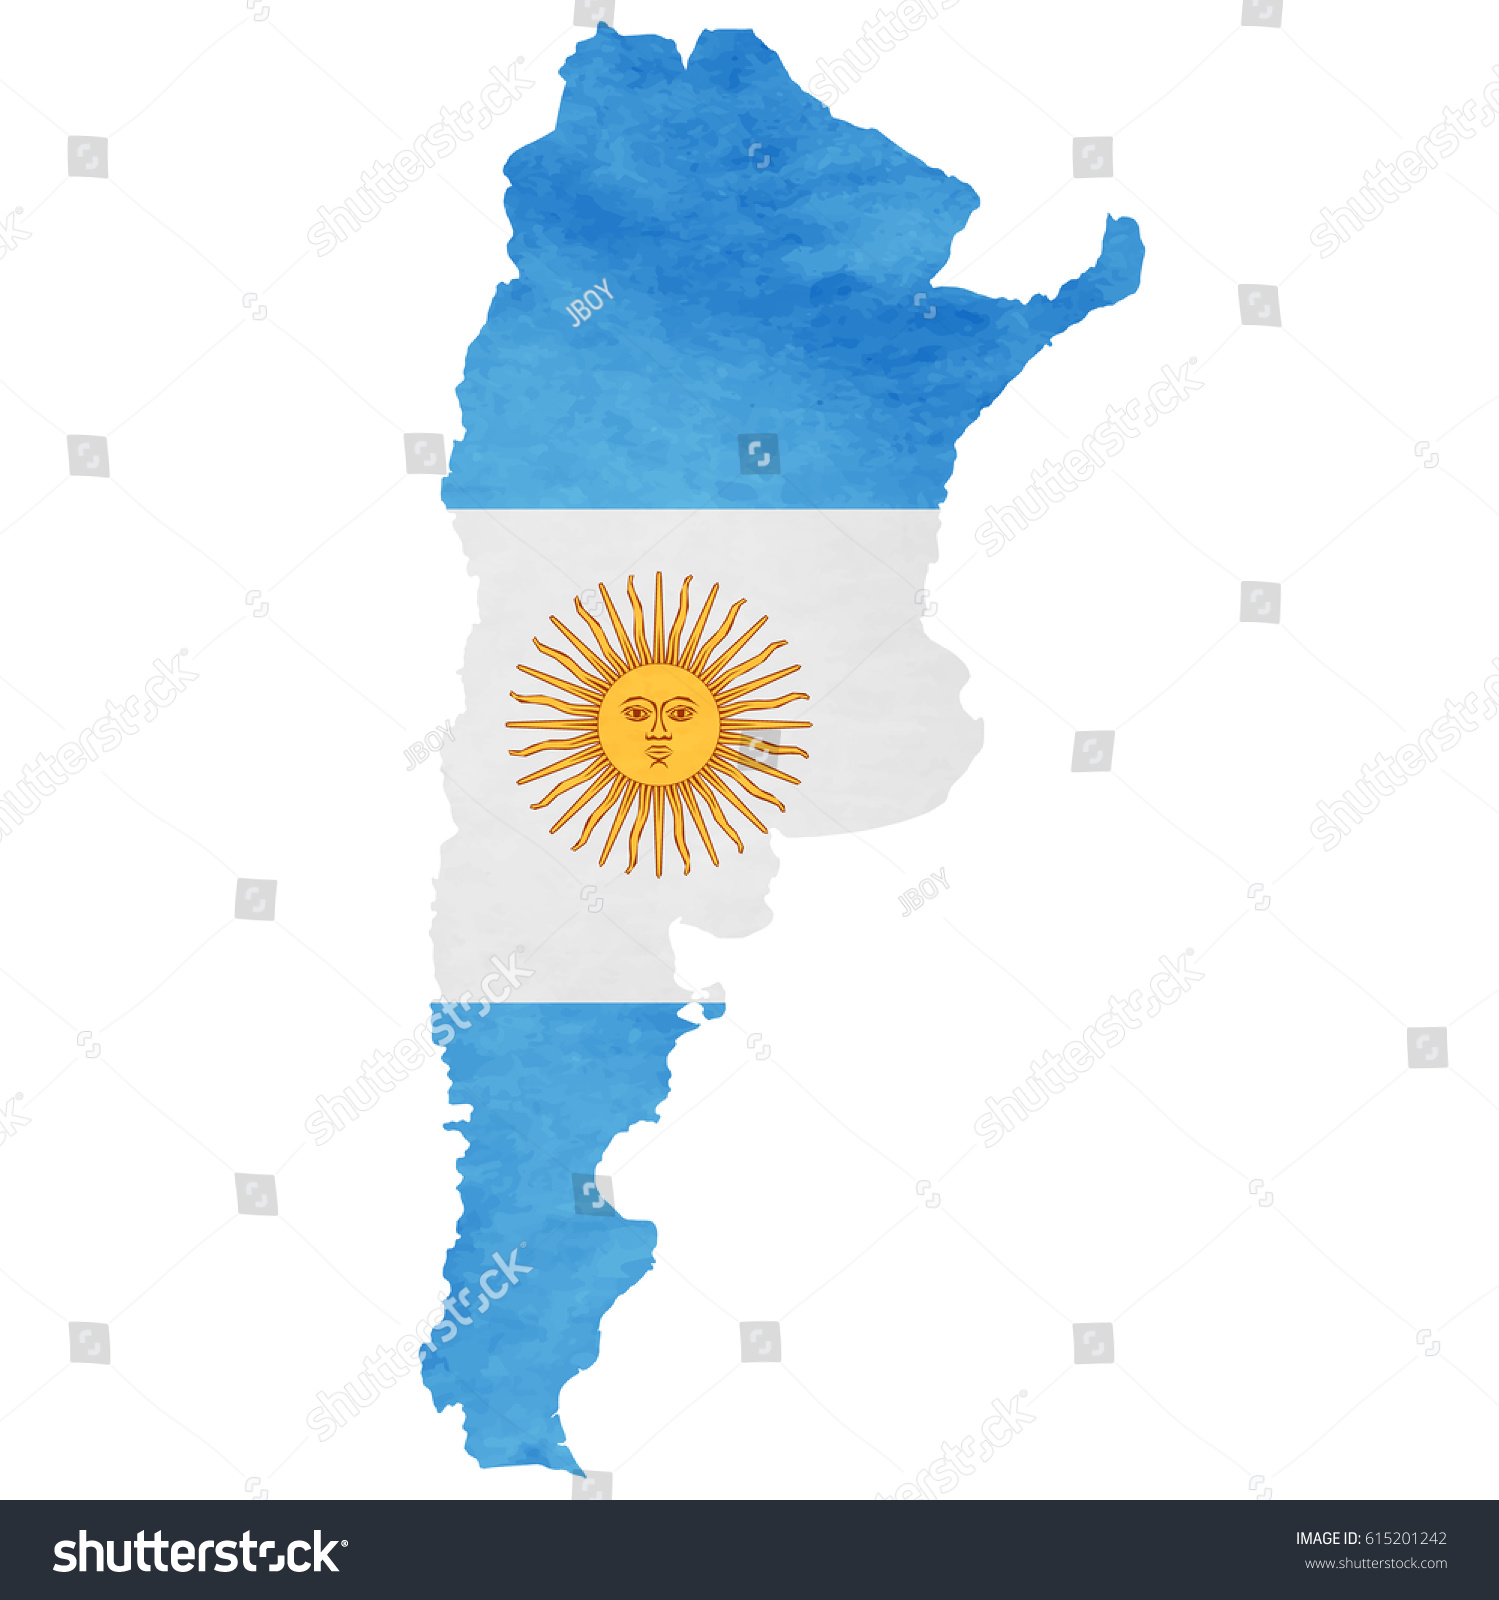 Argentina Map National Flag Icon Stock Vector Shutterstock - Argentina map vector free